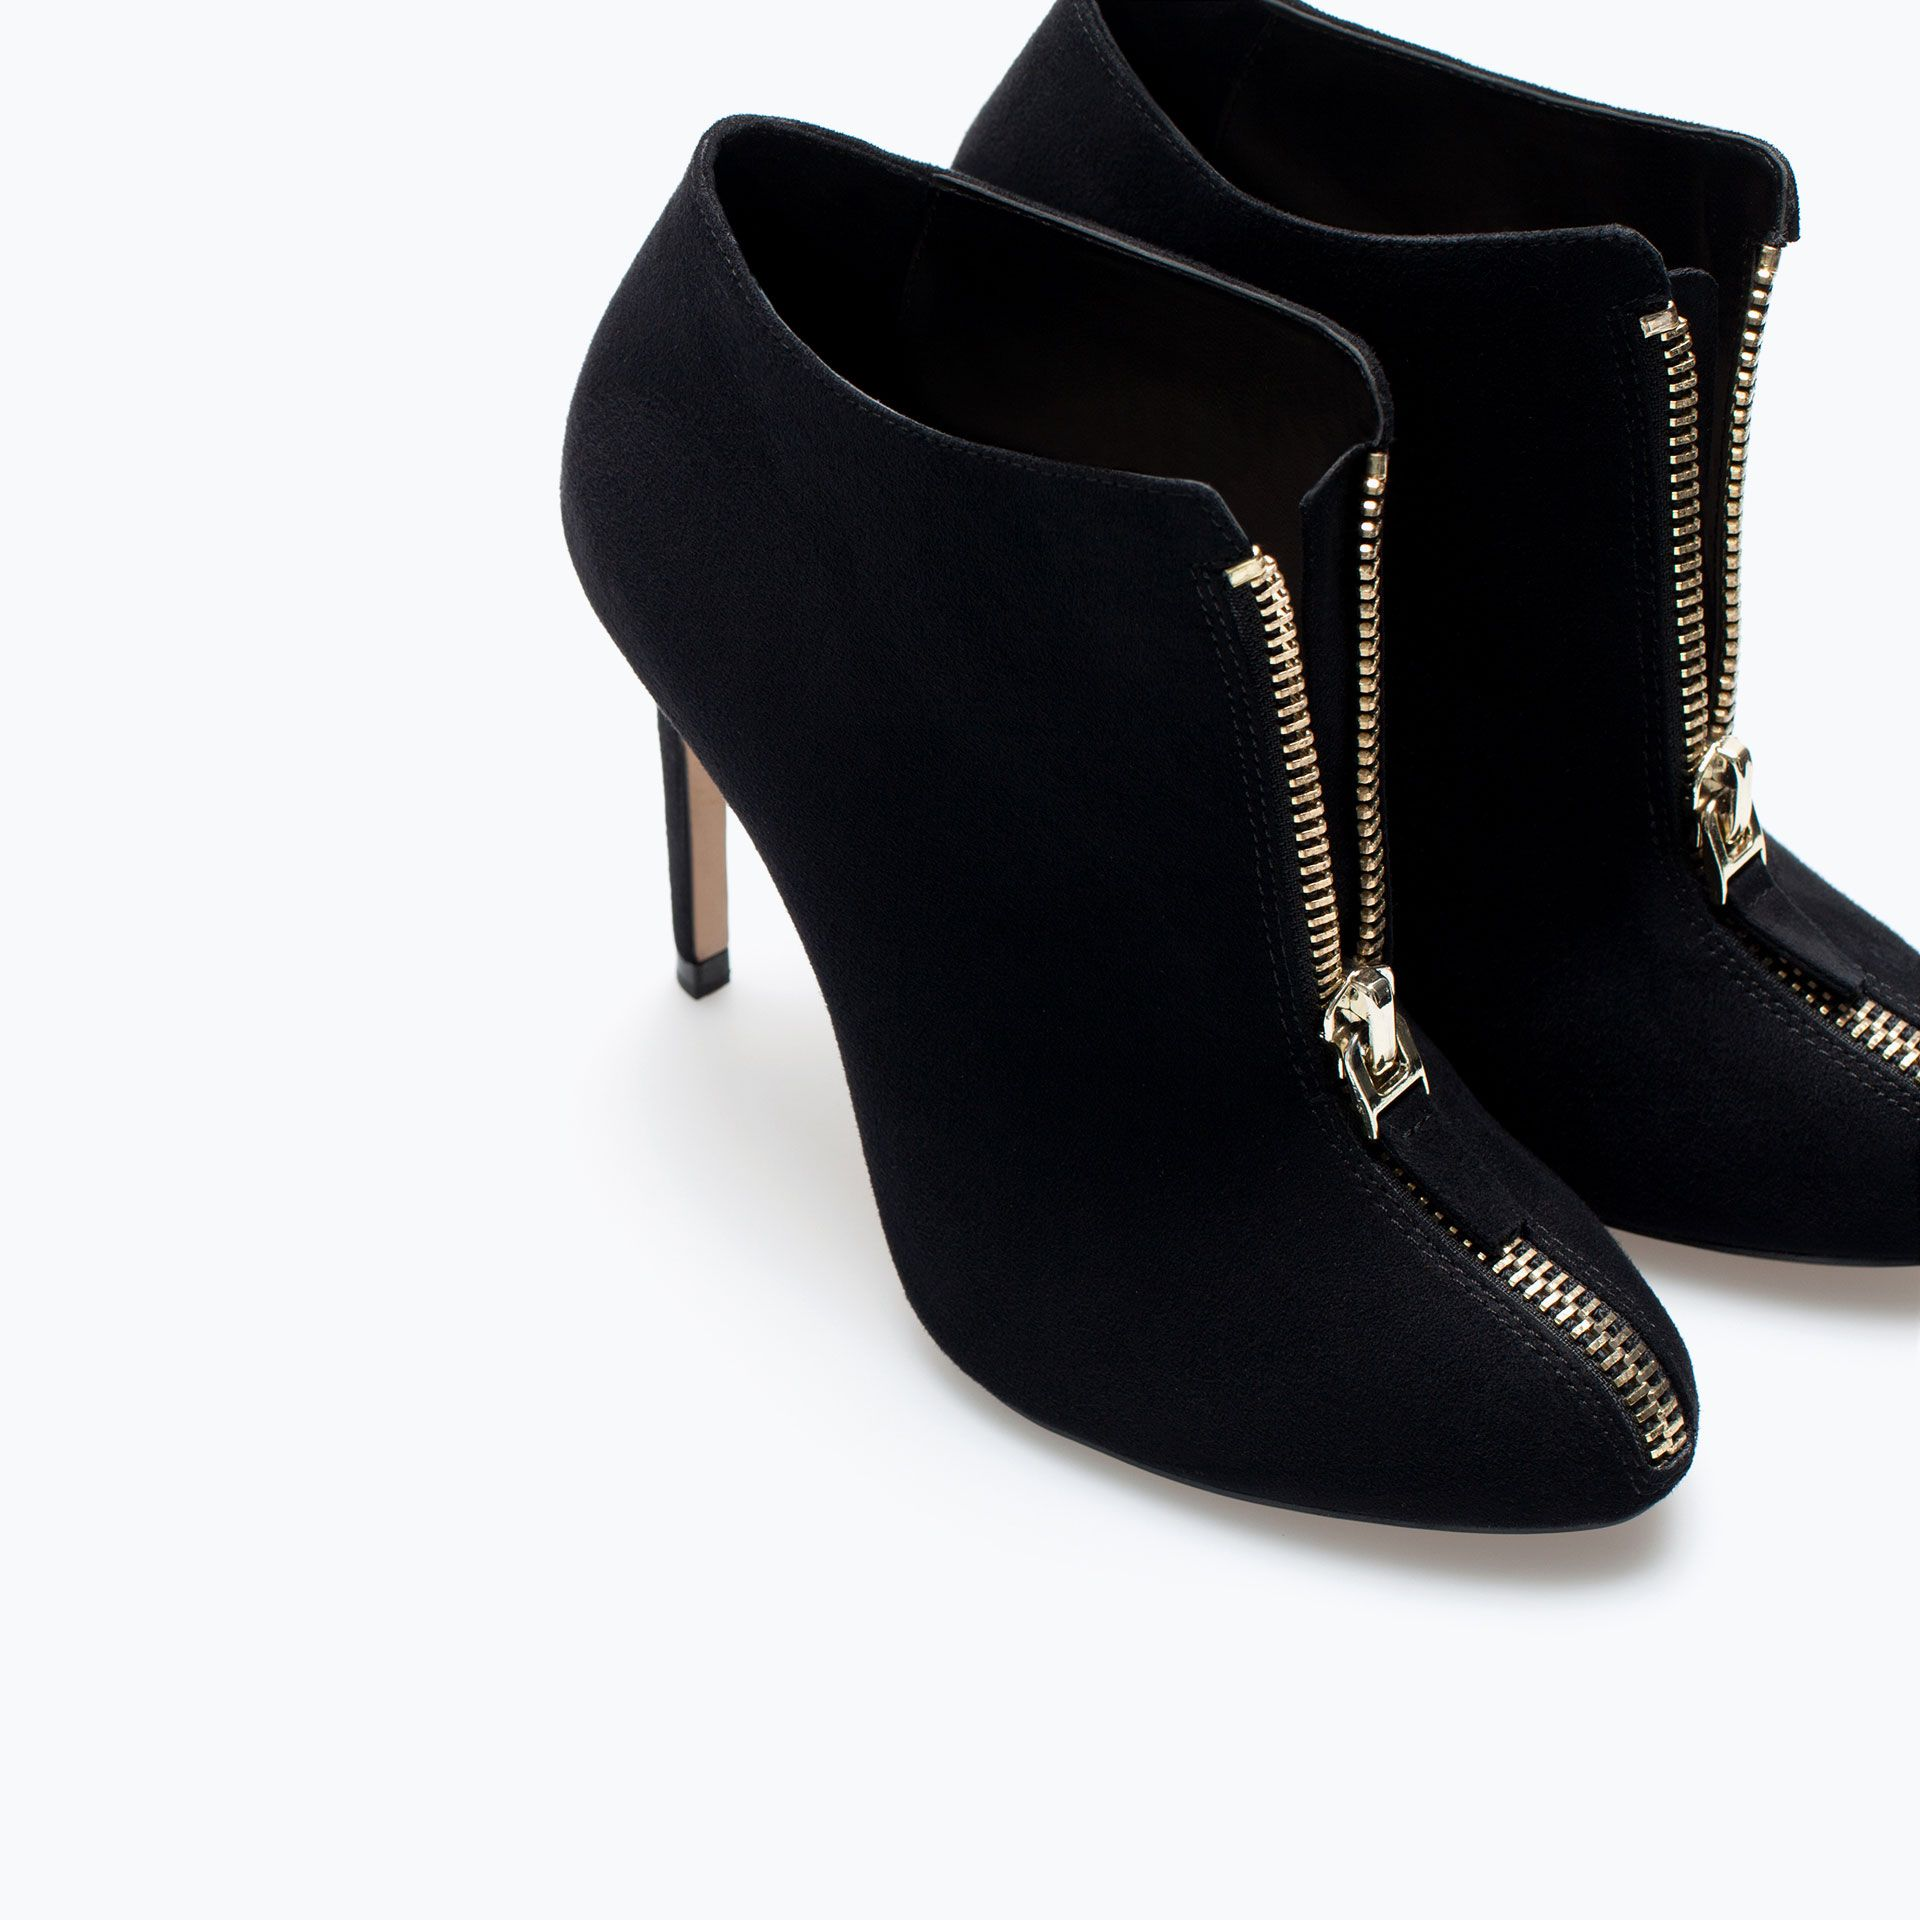 Image 6 of HIGH HEEL ANKLE BOOT WITH ZIP from Zara